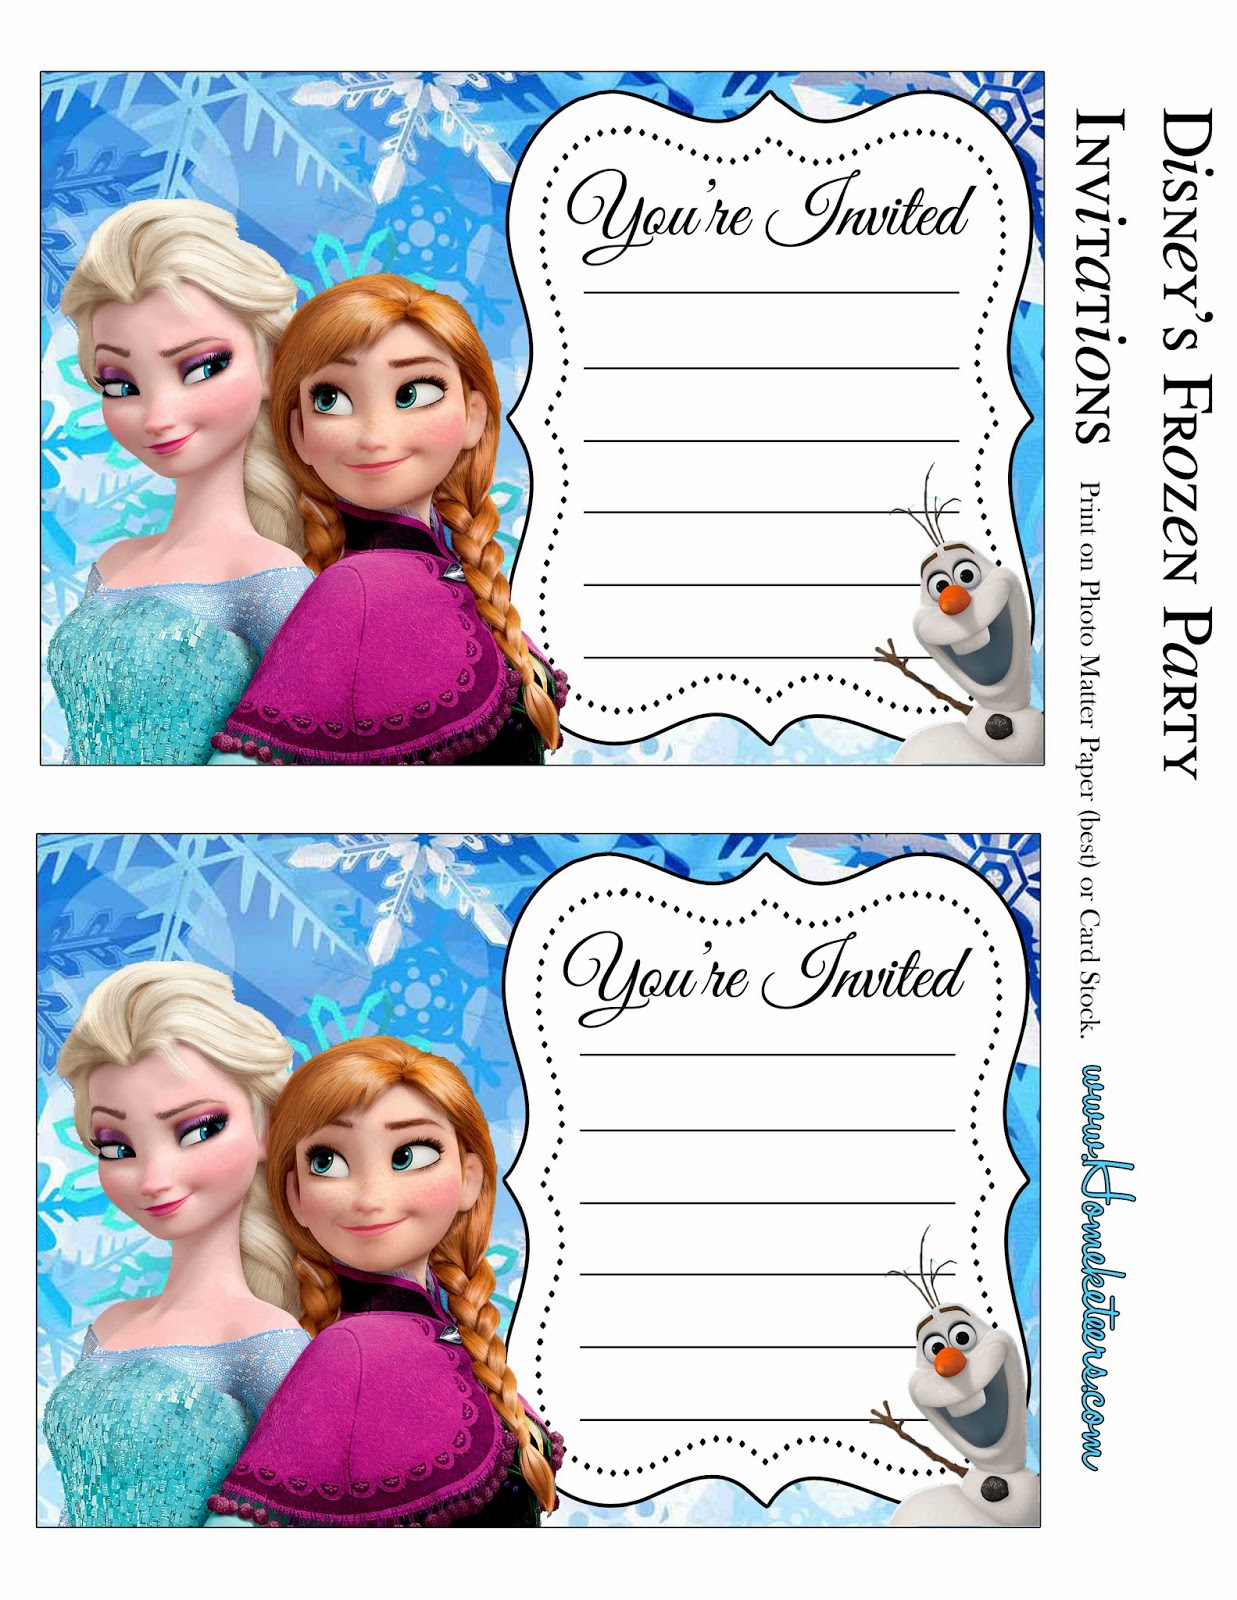 photograph relating to Frozen Invitations Printable identify Frozen Celebration: Cost-free Printable Invites. - Oh My Fiesta! inside